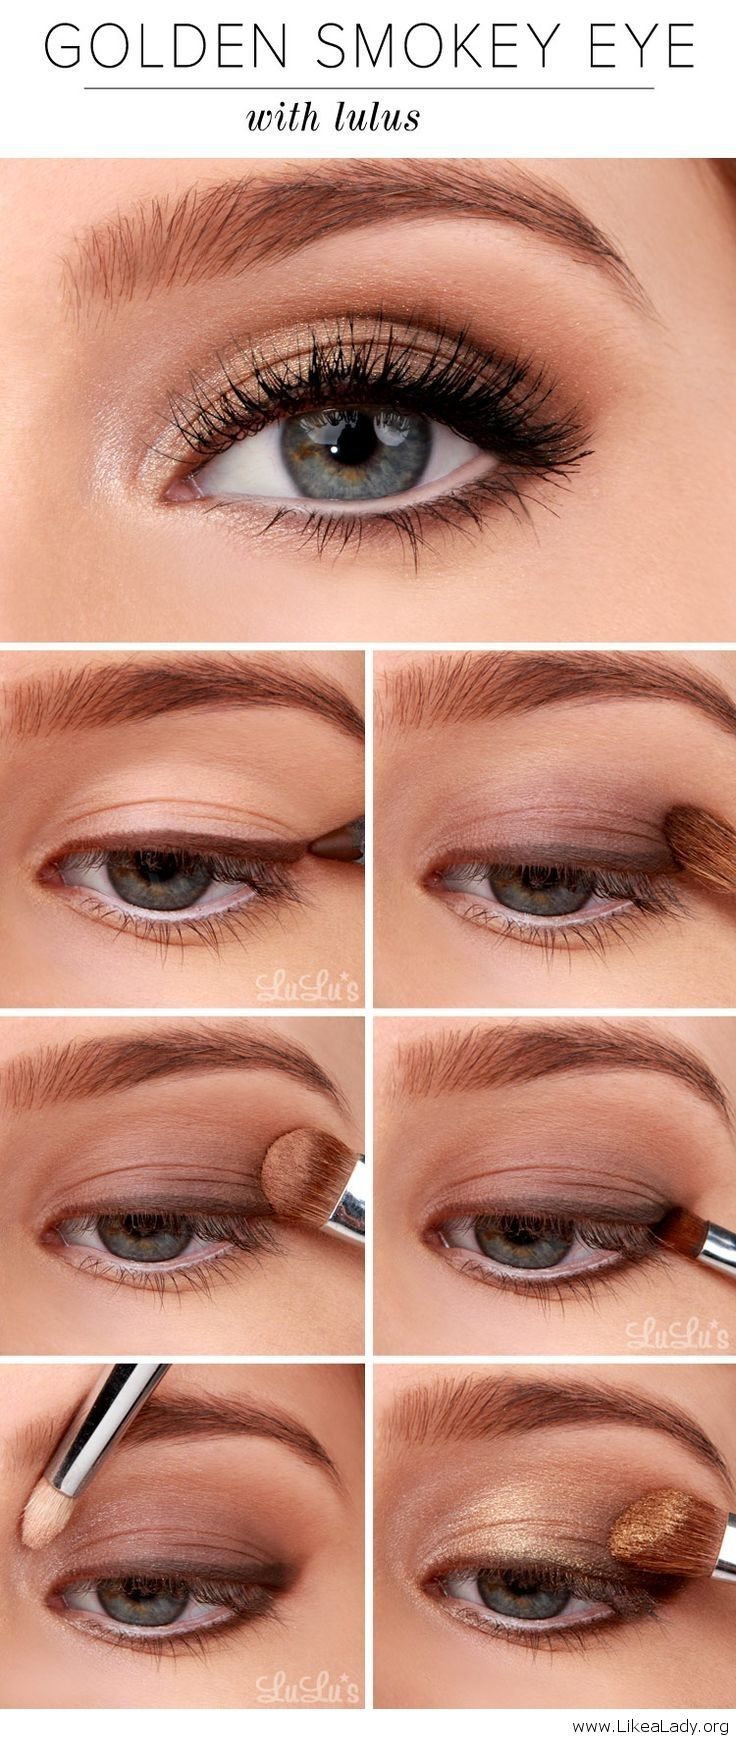 The Golden Smokey Eyeshadow Tutorial